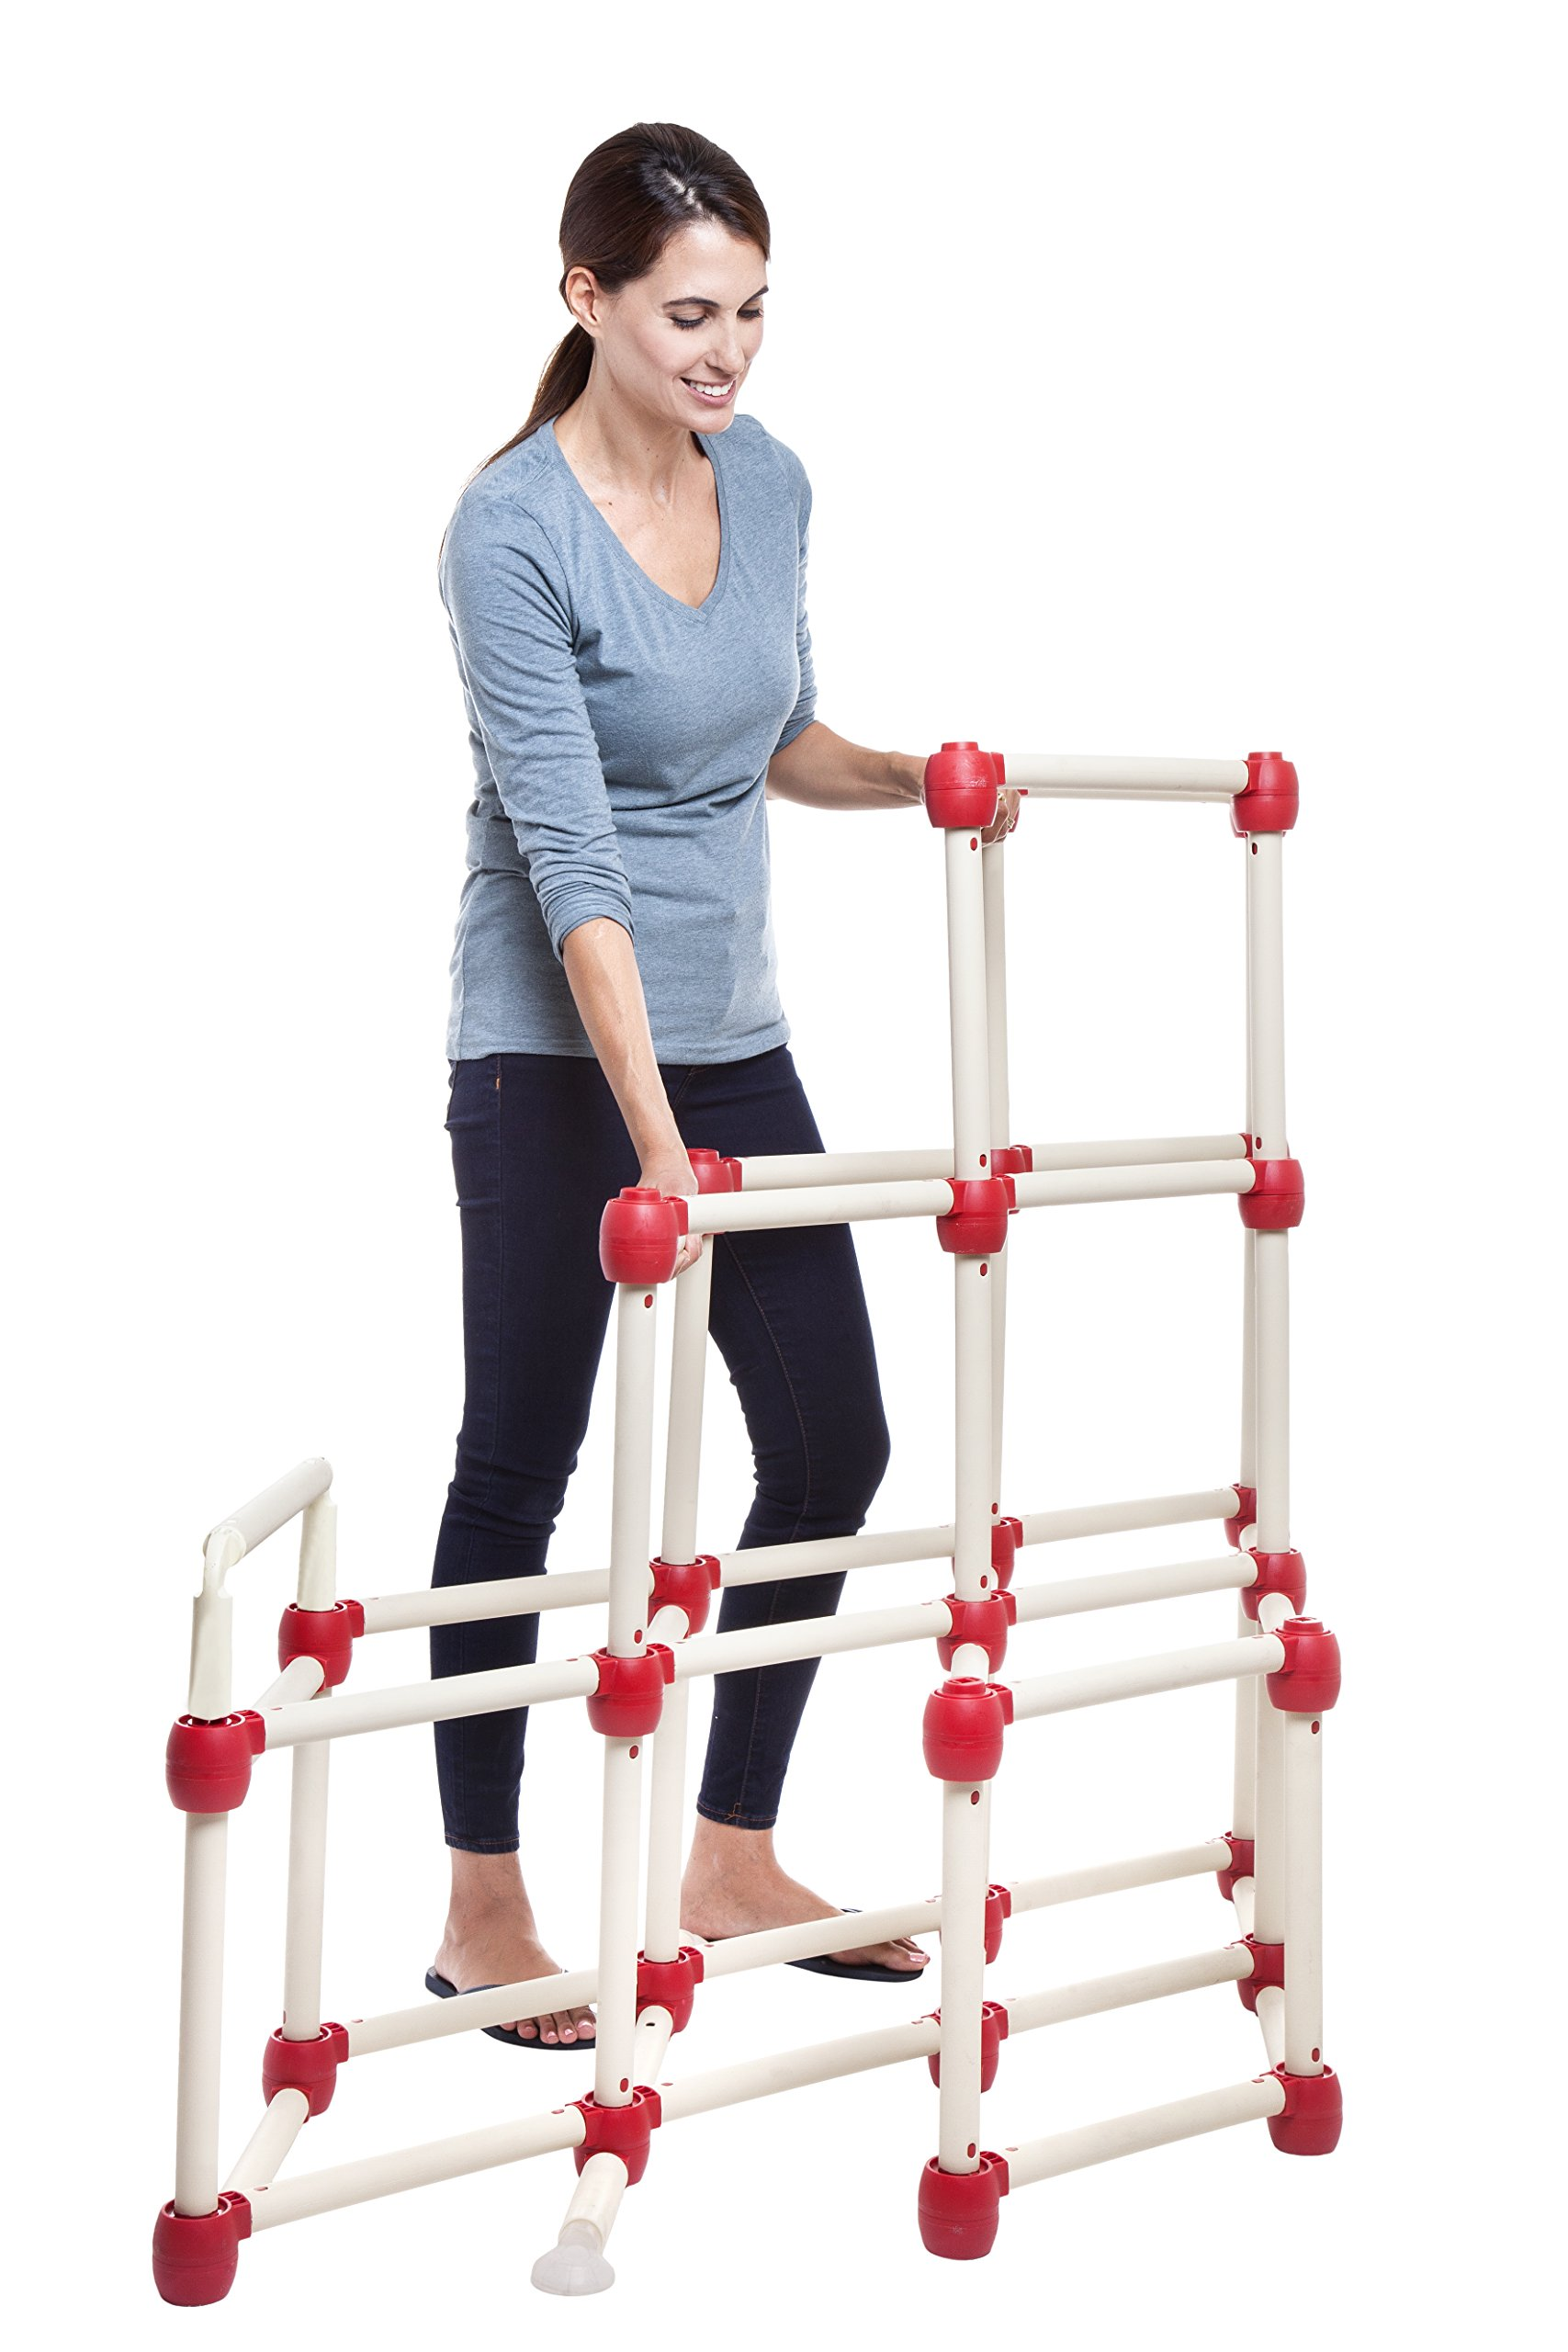 Lil Monkey Everest Climber GYM Foldable Frame Structure With Slide 1.5 Meter hight by Lil' monkey